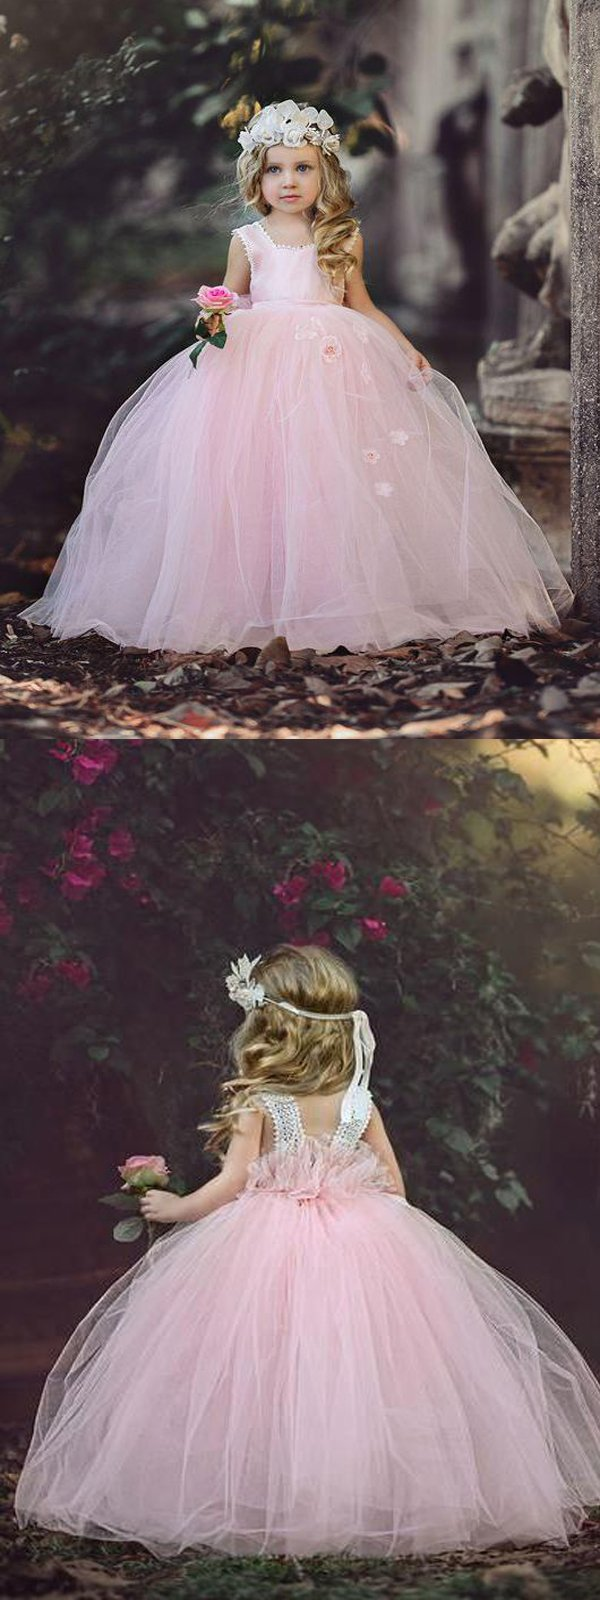 Pink Halter Tulle Flower Girl Dresses With Handmade Flowercheap